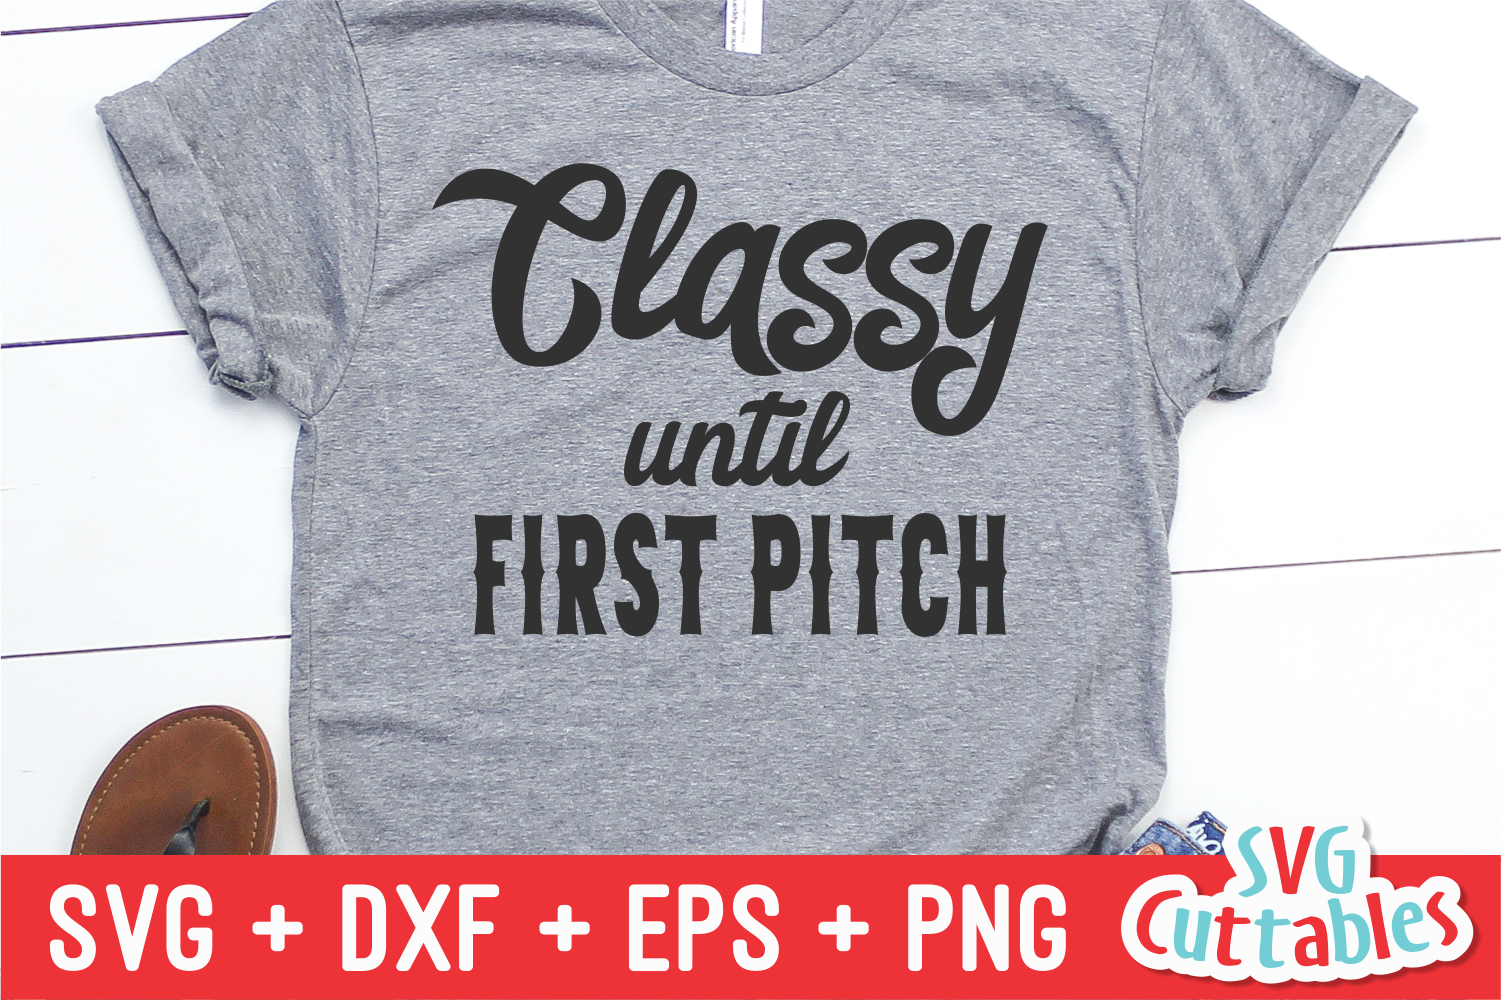 Classy Until First Pitch | Baseball svg Cut File example image 1